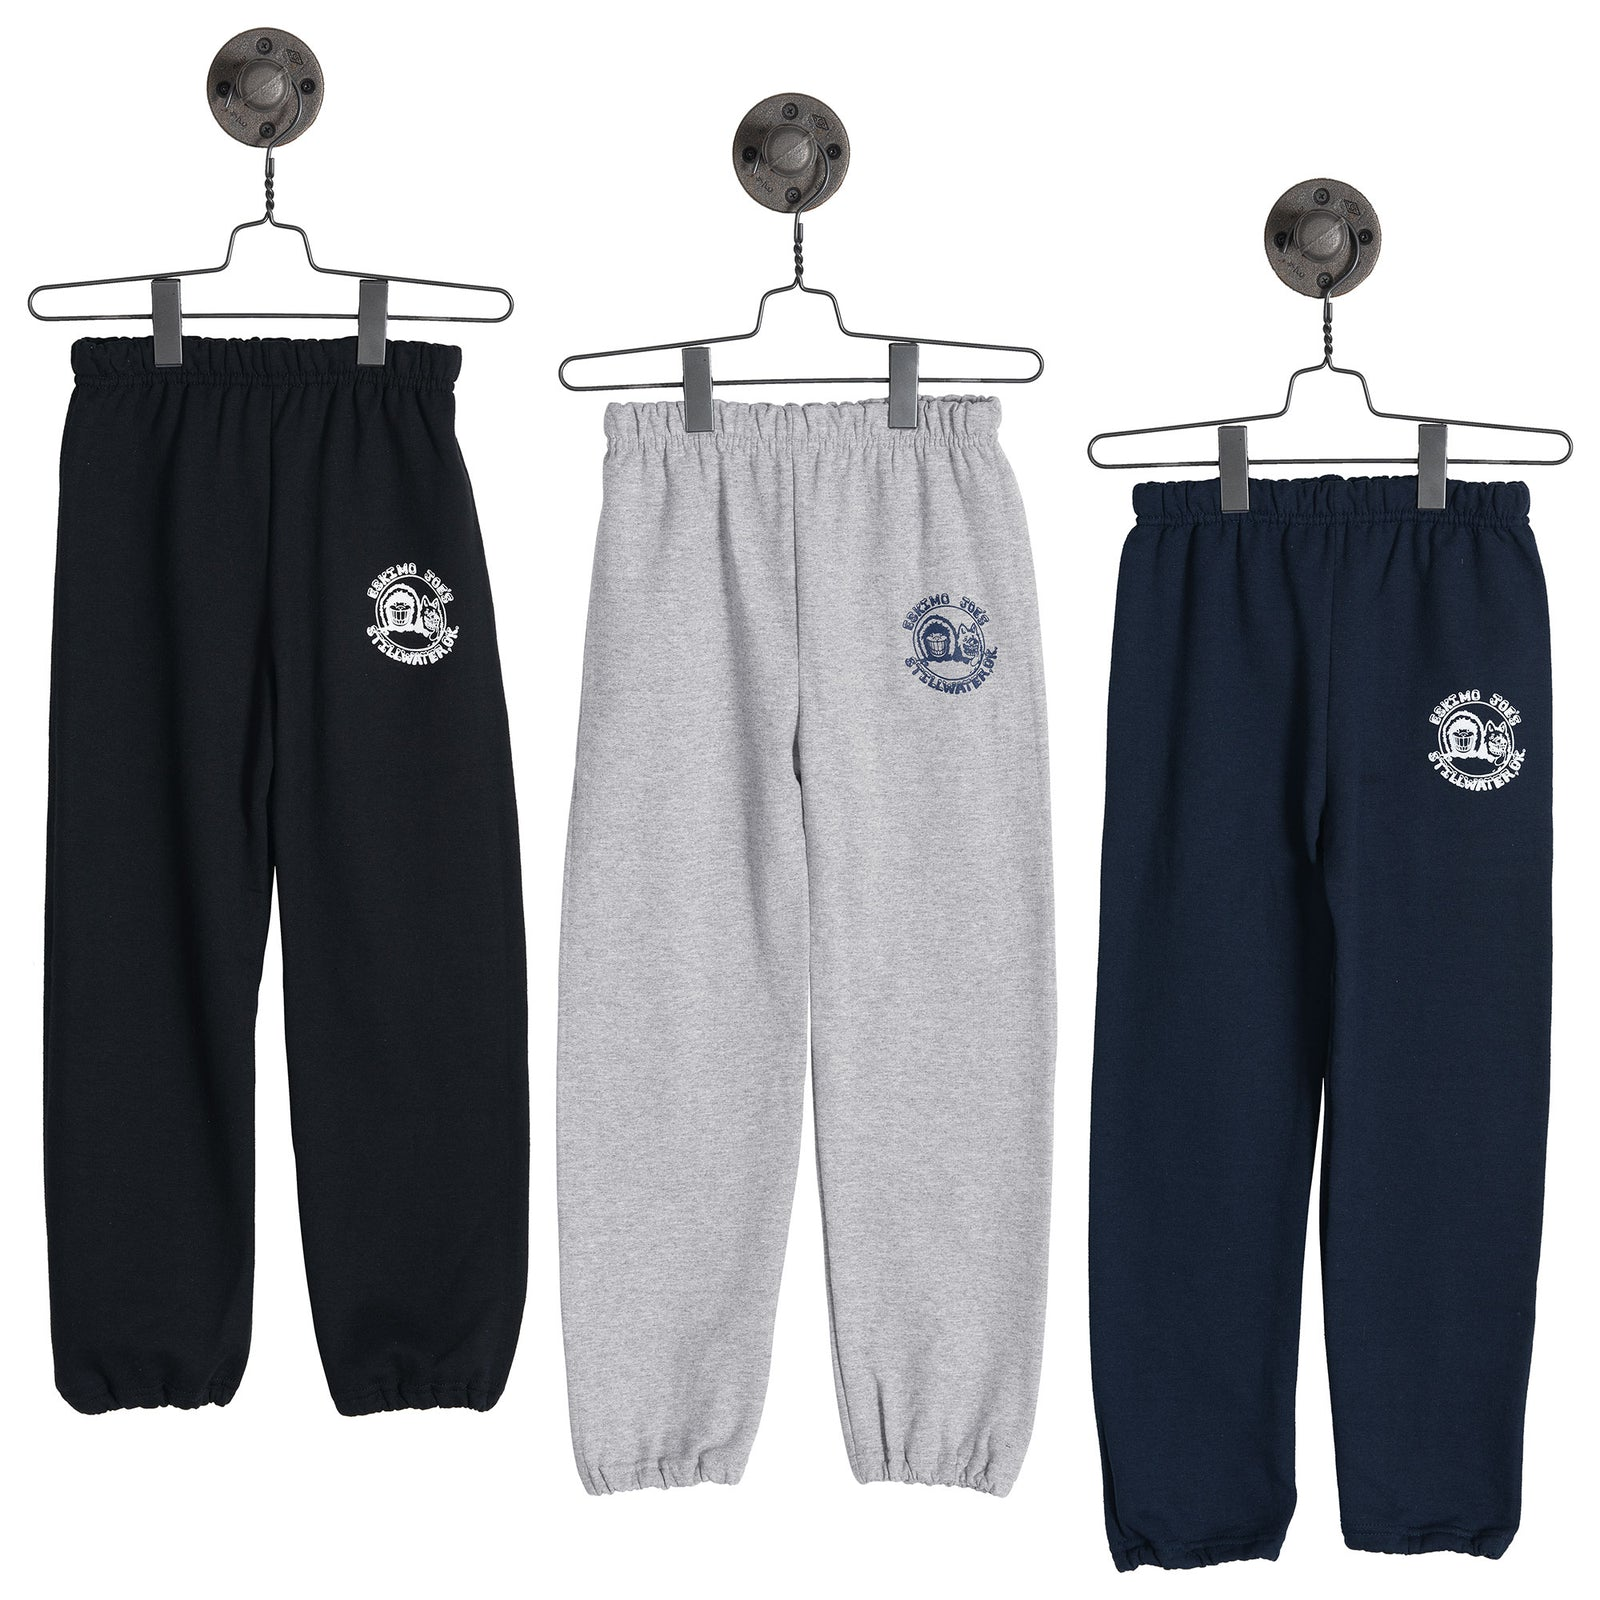 YOUTH SWEATPANT - YSP